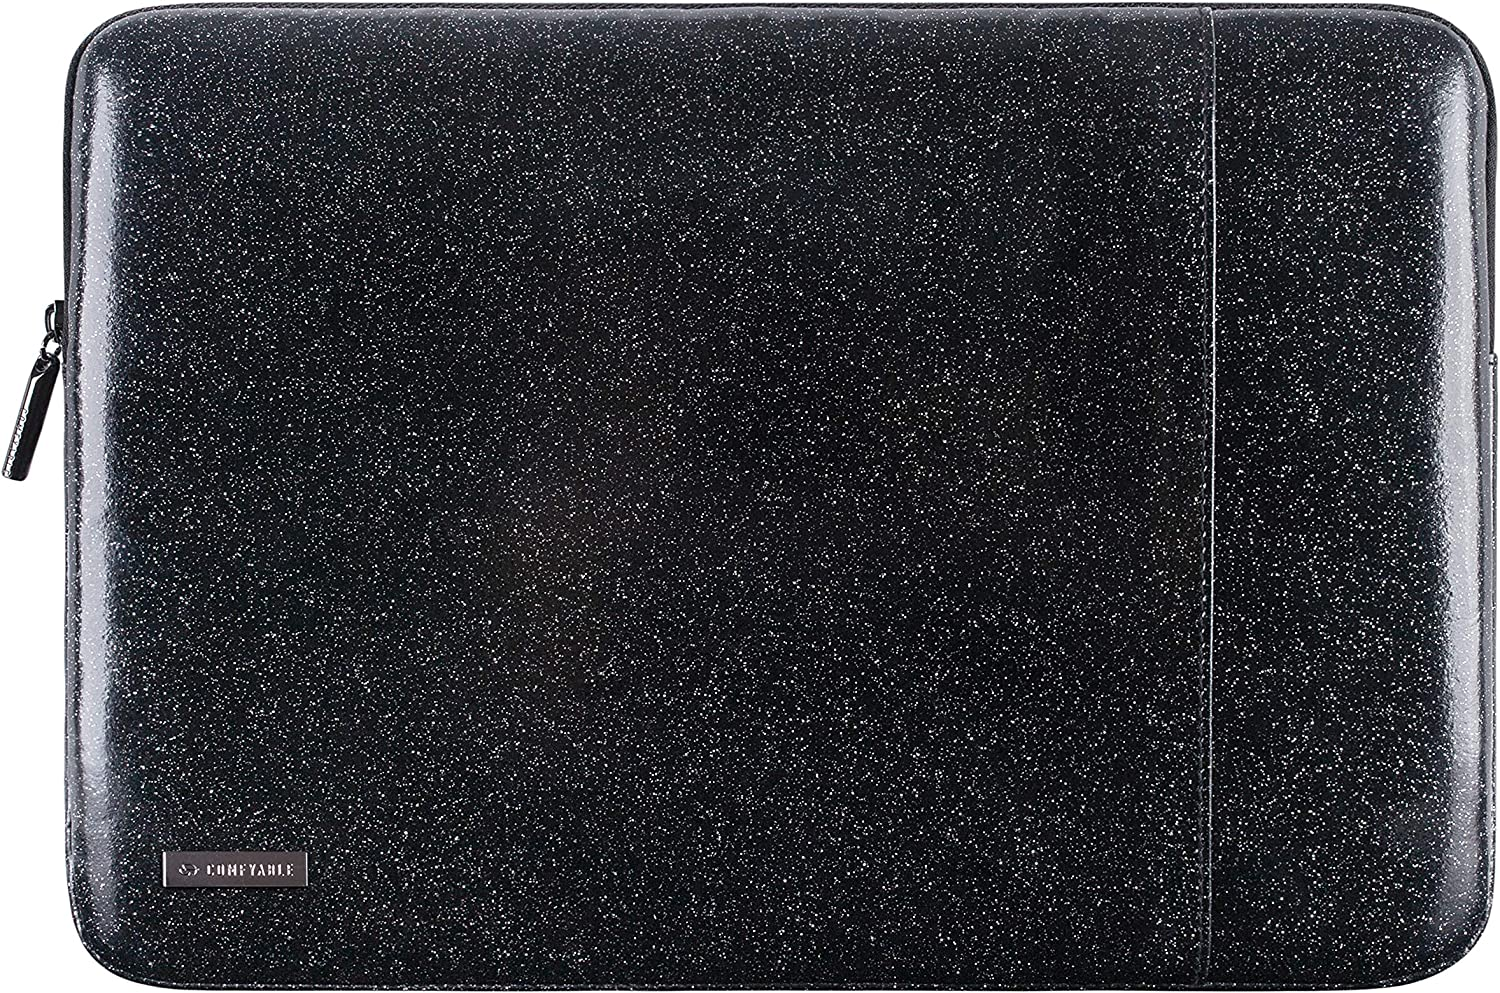 Comfyable 14 Inch Glitter Laptop Sleeve for 15 Inch MacBook Pro Touch Bar A1990 A1707, ThinkPad X1 Yoga (1-4th Gen), 14 HP Acer Chromebook, New Surface Laptop 3 15 Inch 2019